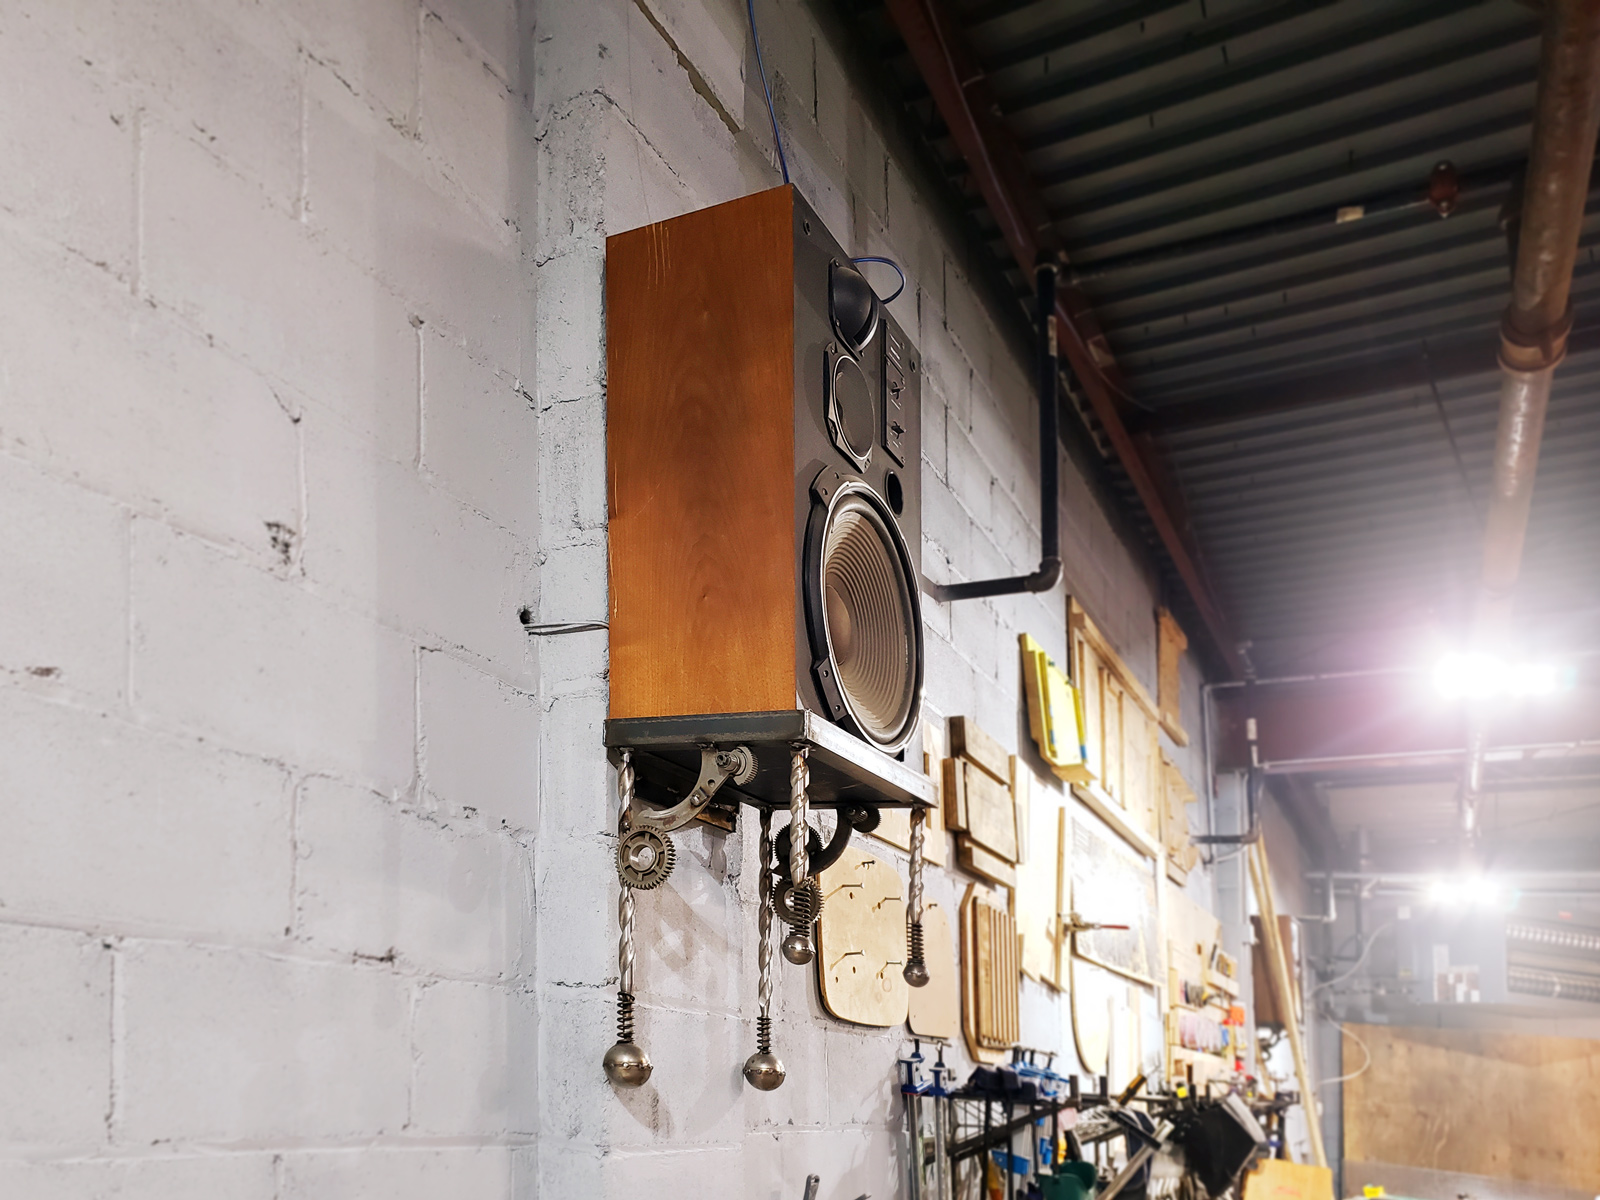 One of the finished speaker shelves, mounted on the shop wall.